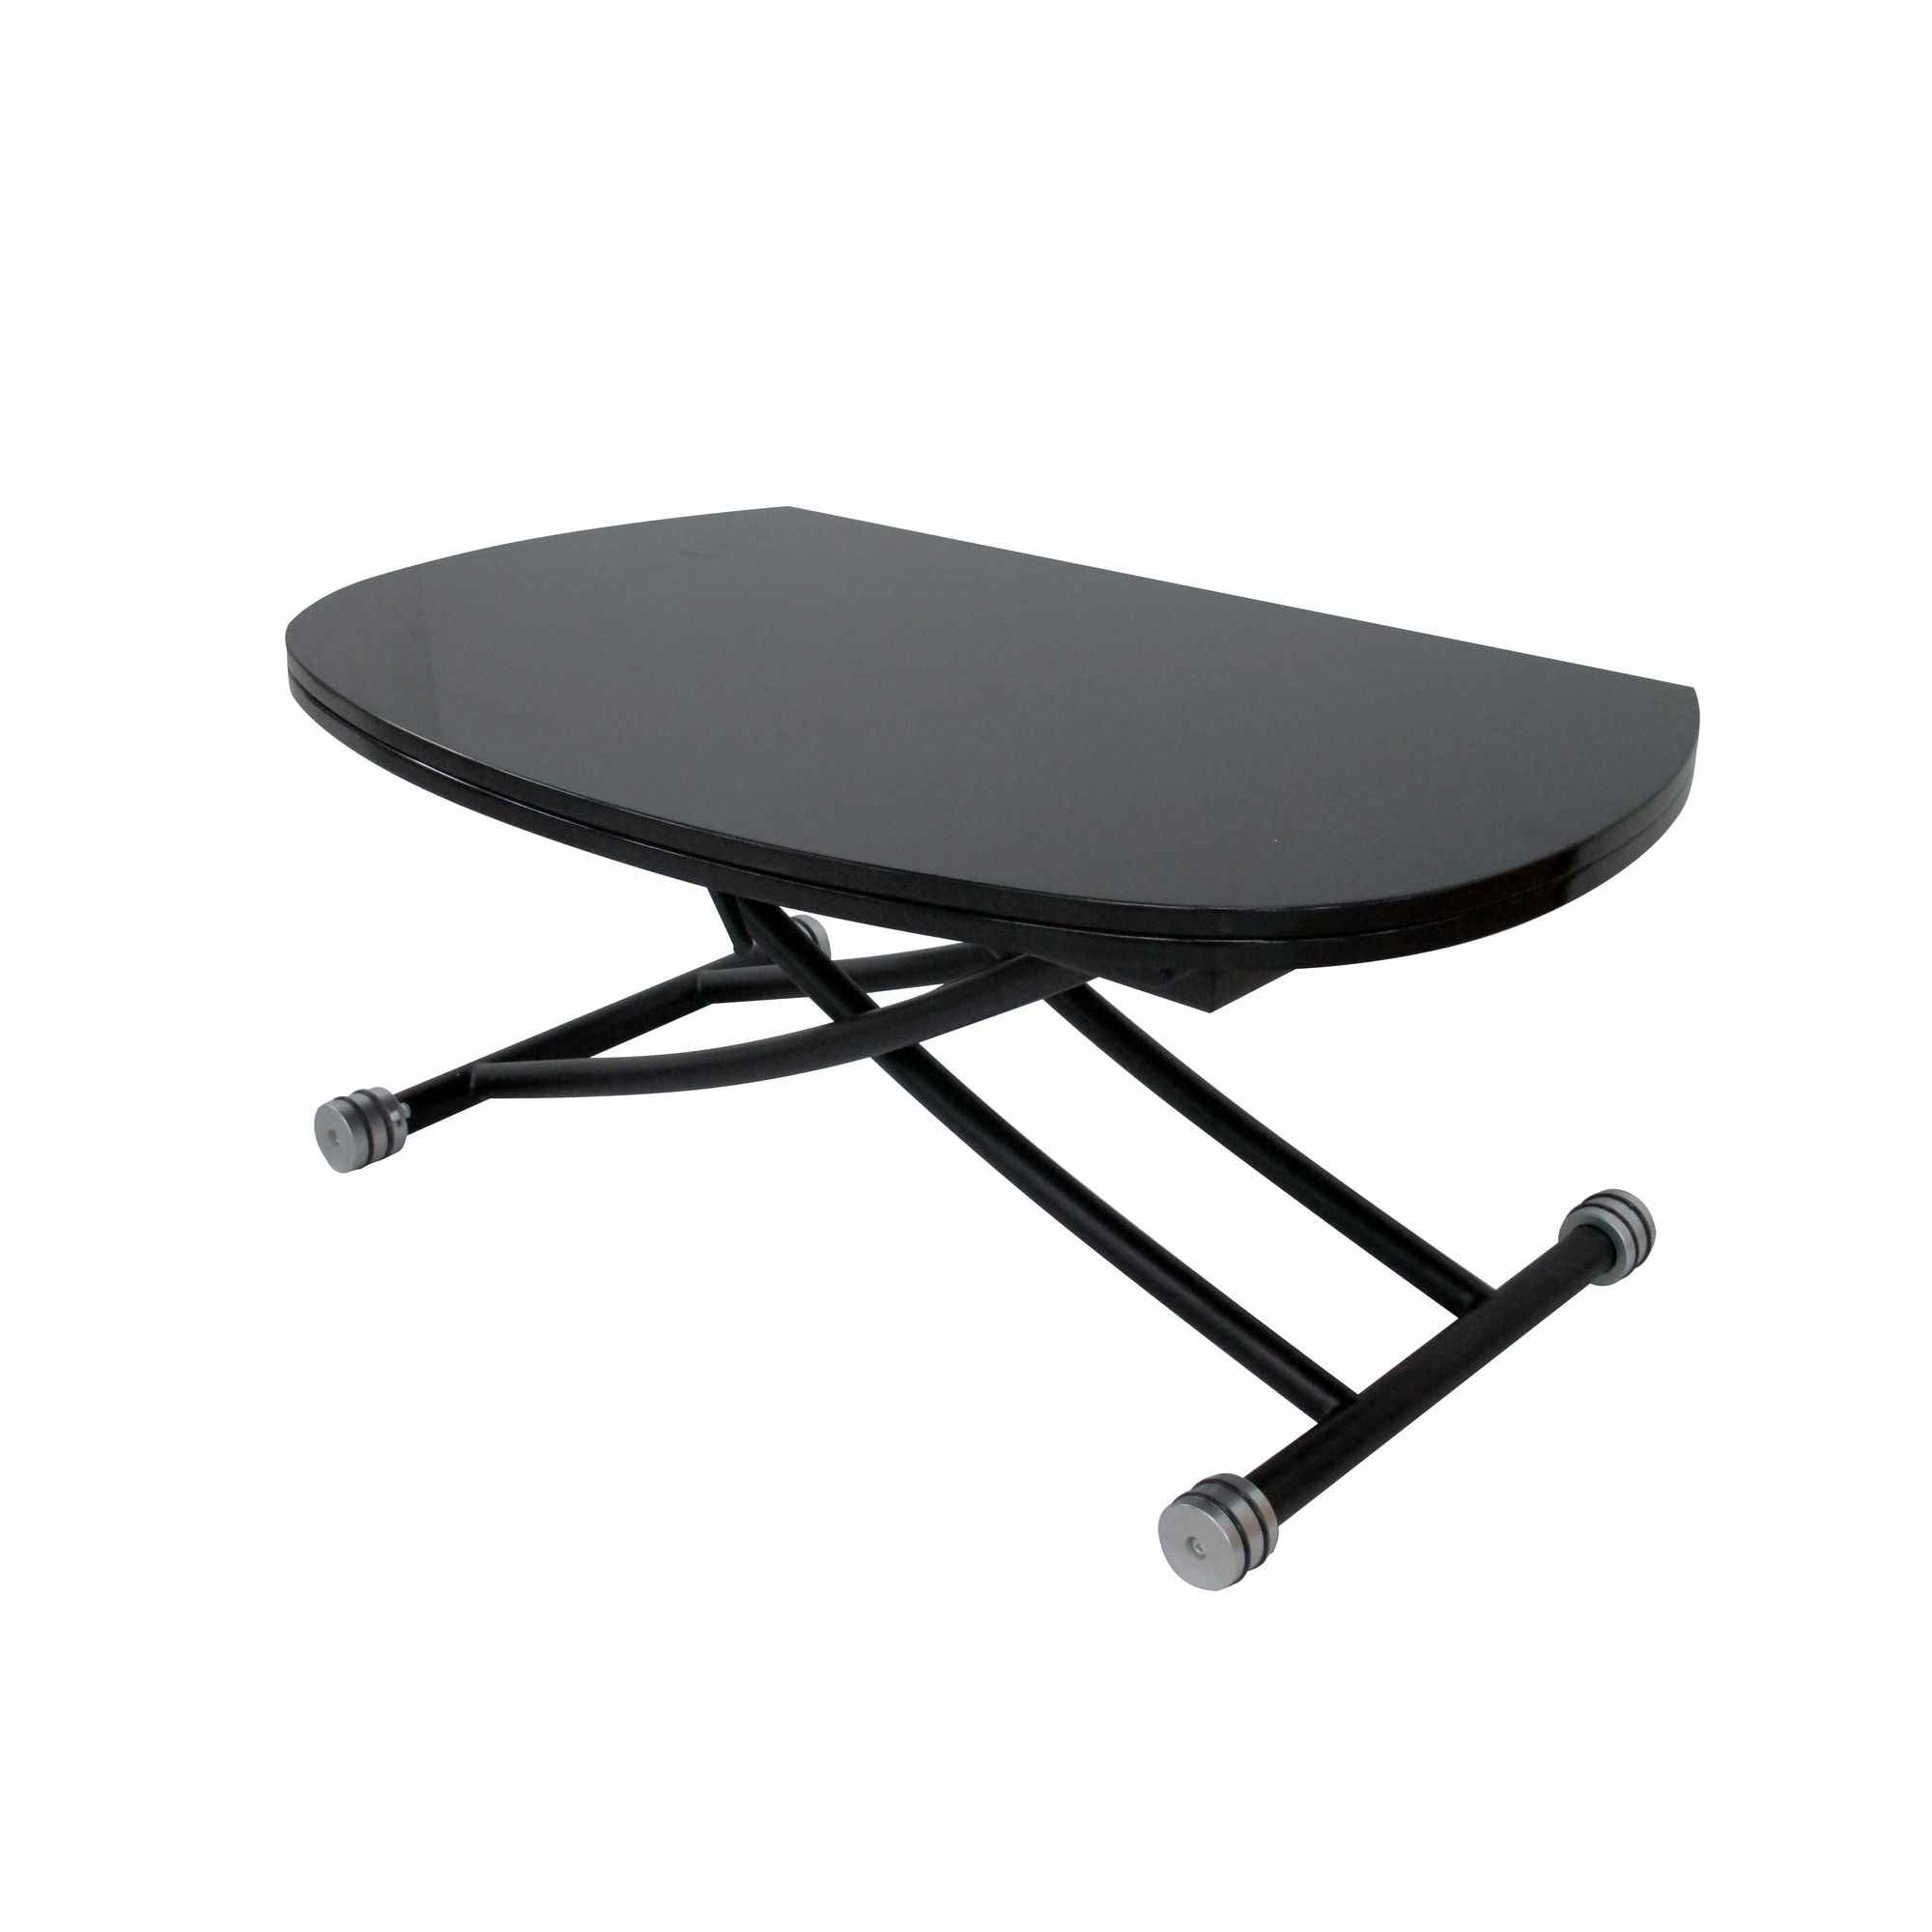 Table basse rallonge top table basse populaires table basse relevable a rallonge full hd fond - Table relevable avec rallonge ...